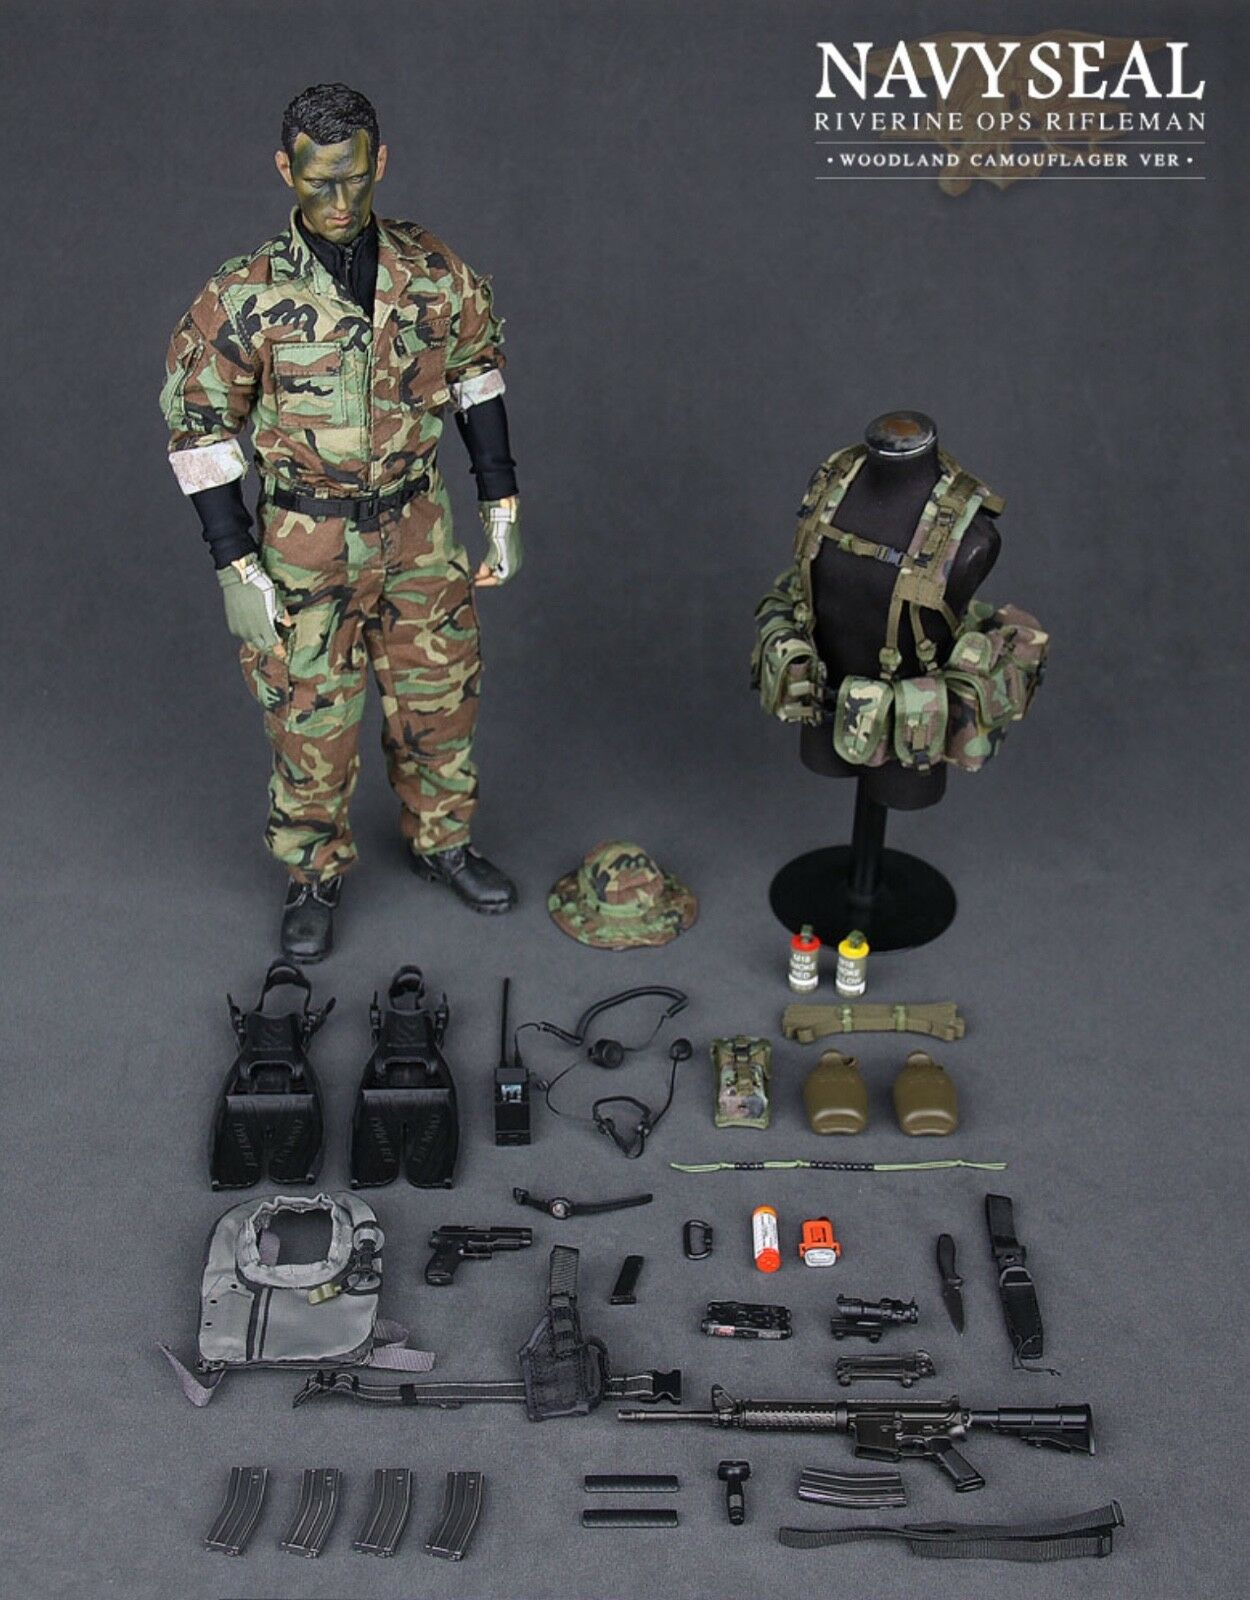 DAMTOYS 1 6 scale US Navy Seal 'Riverine Ops' Rifleman (Woodland) Boxed figure